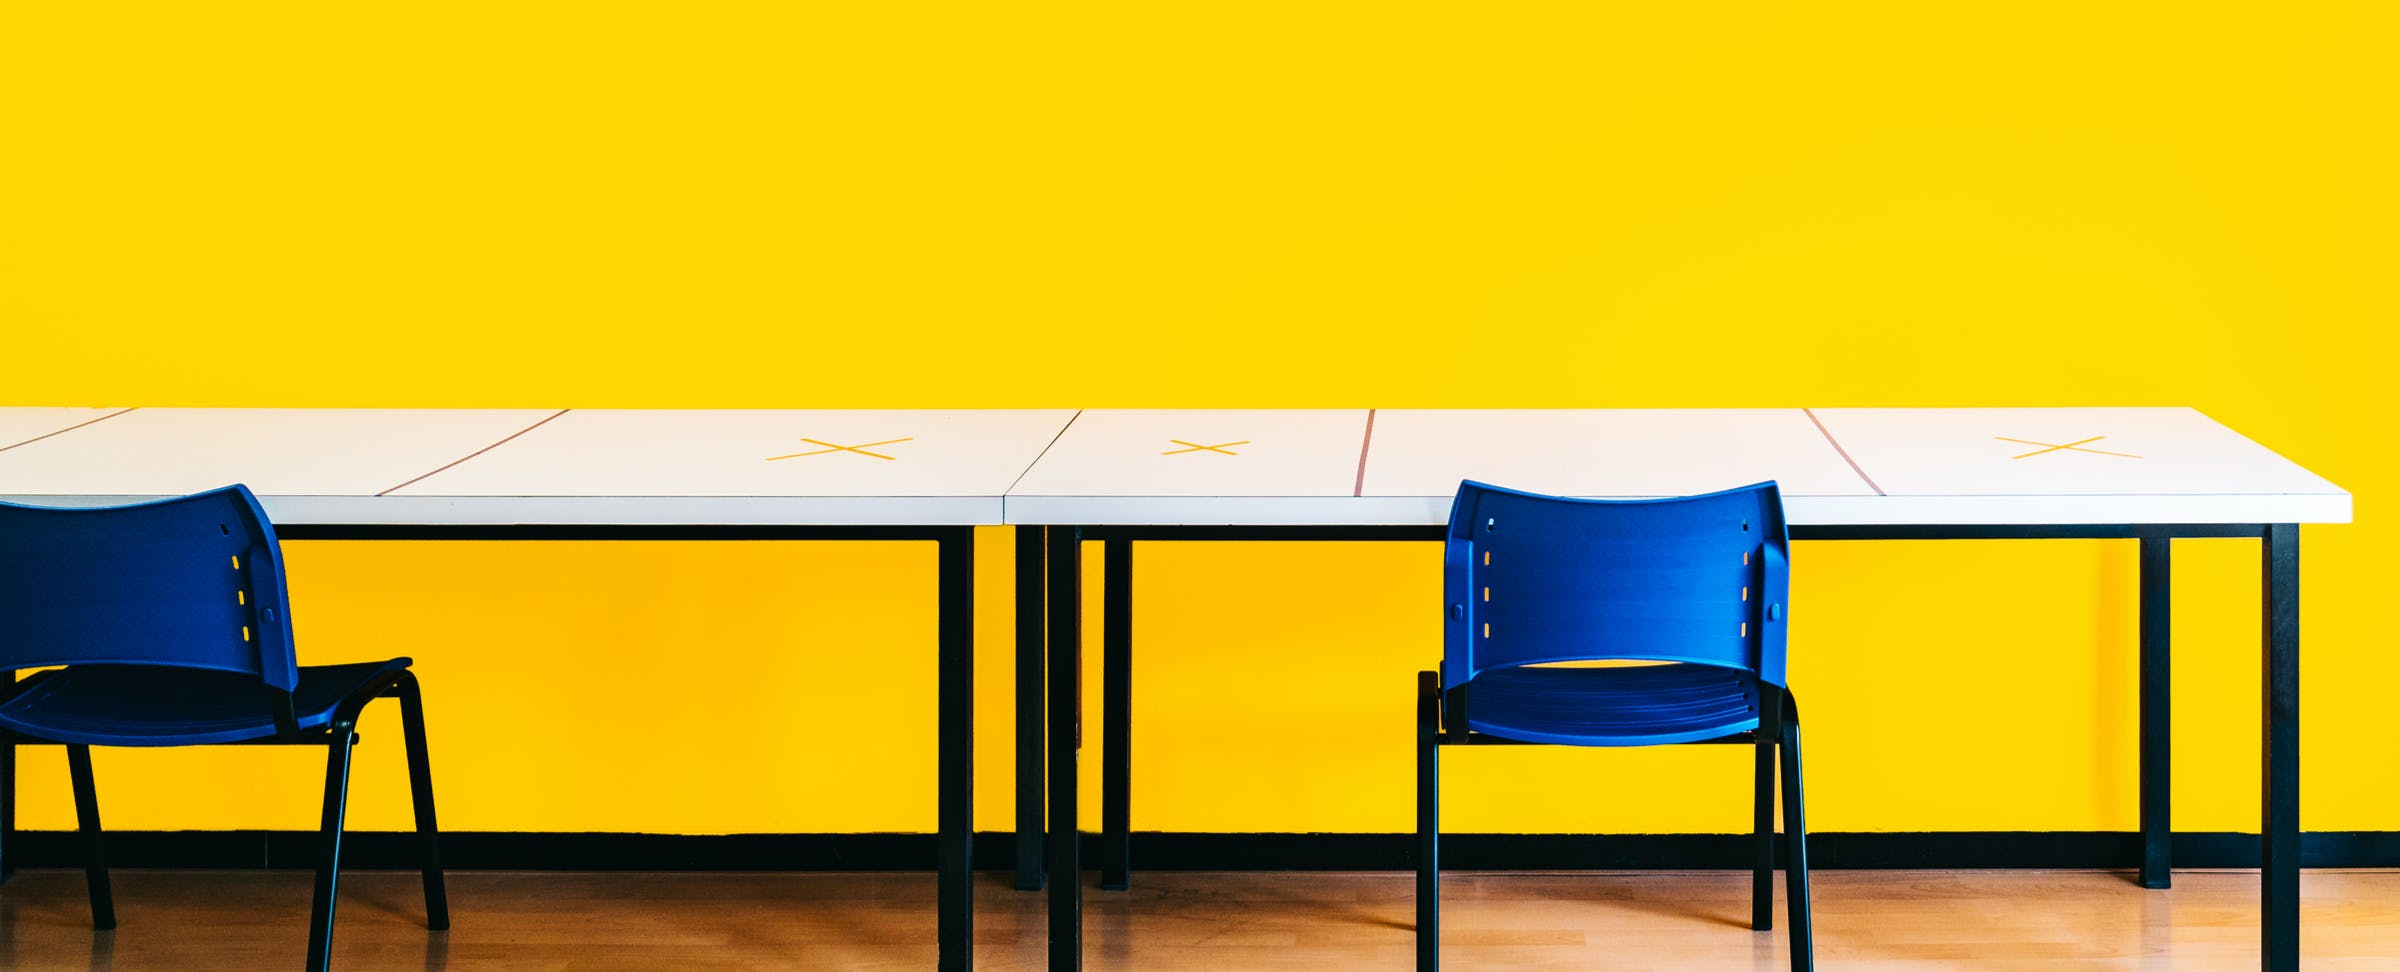 What Does Good Classroom Design Look Like in the Age of Social Distancing? - EdSurge News